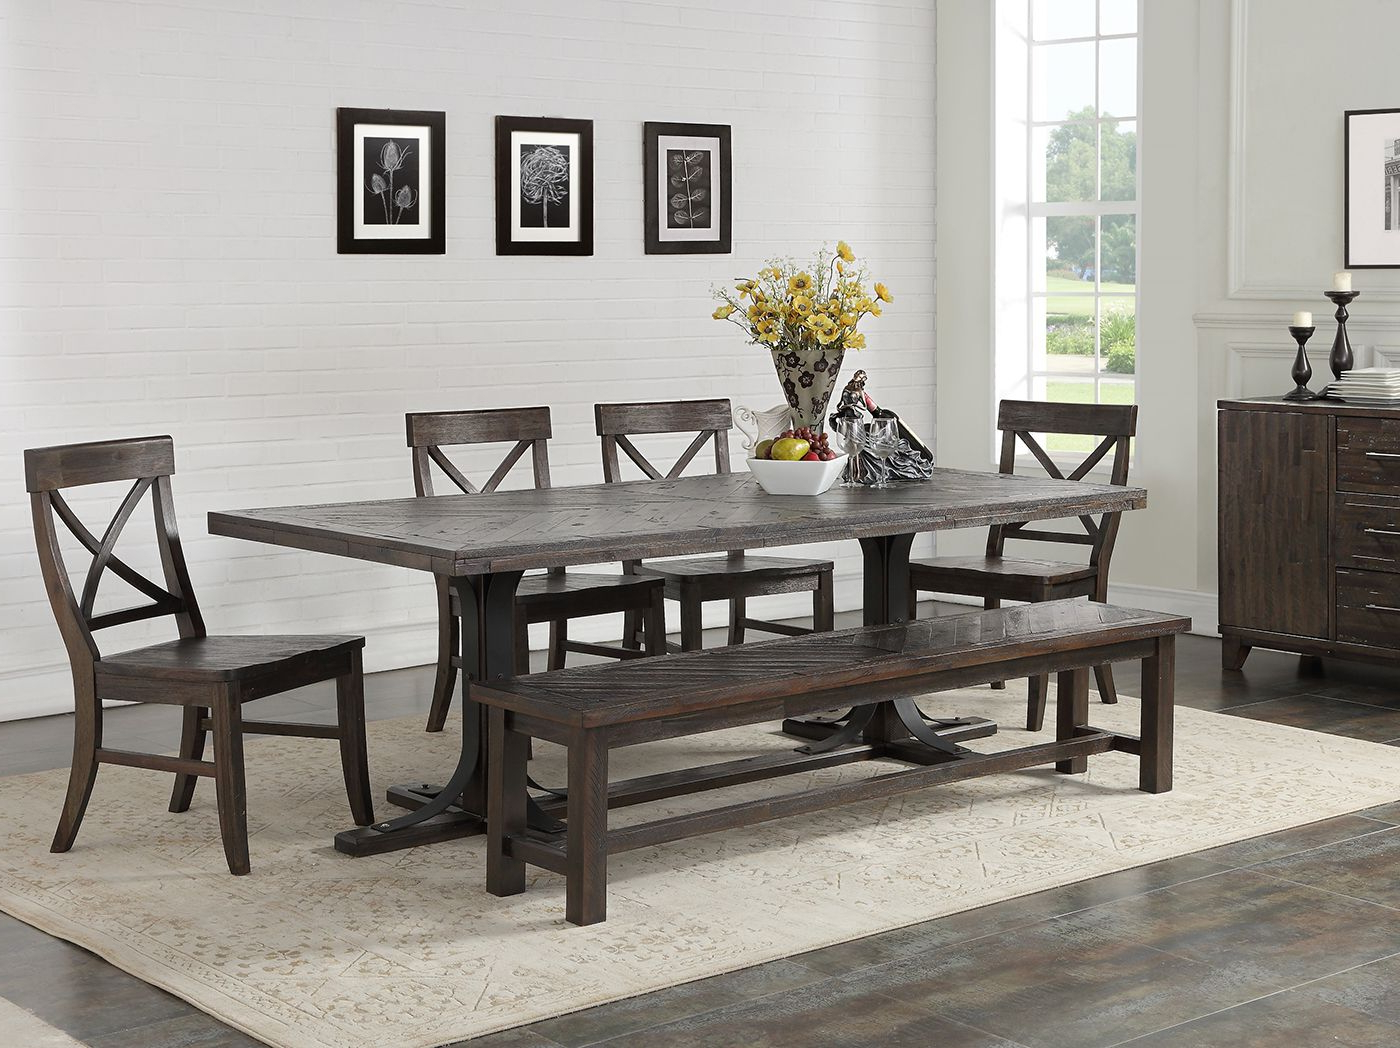 Aria 5 Piece Dining Sets Throughout Well Known Direct Designs® Aria 5 Pc. Dining Set – The Direct Designs® Aria 5 (Gallery 4 of 20)